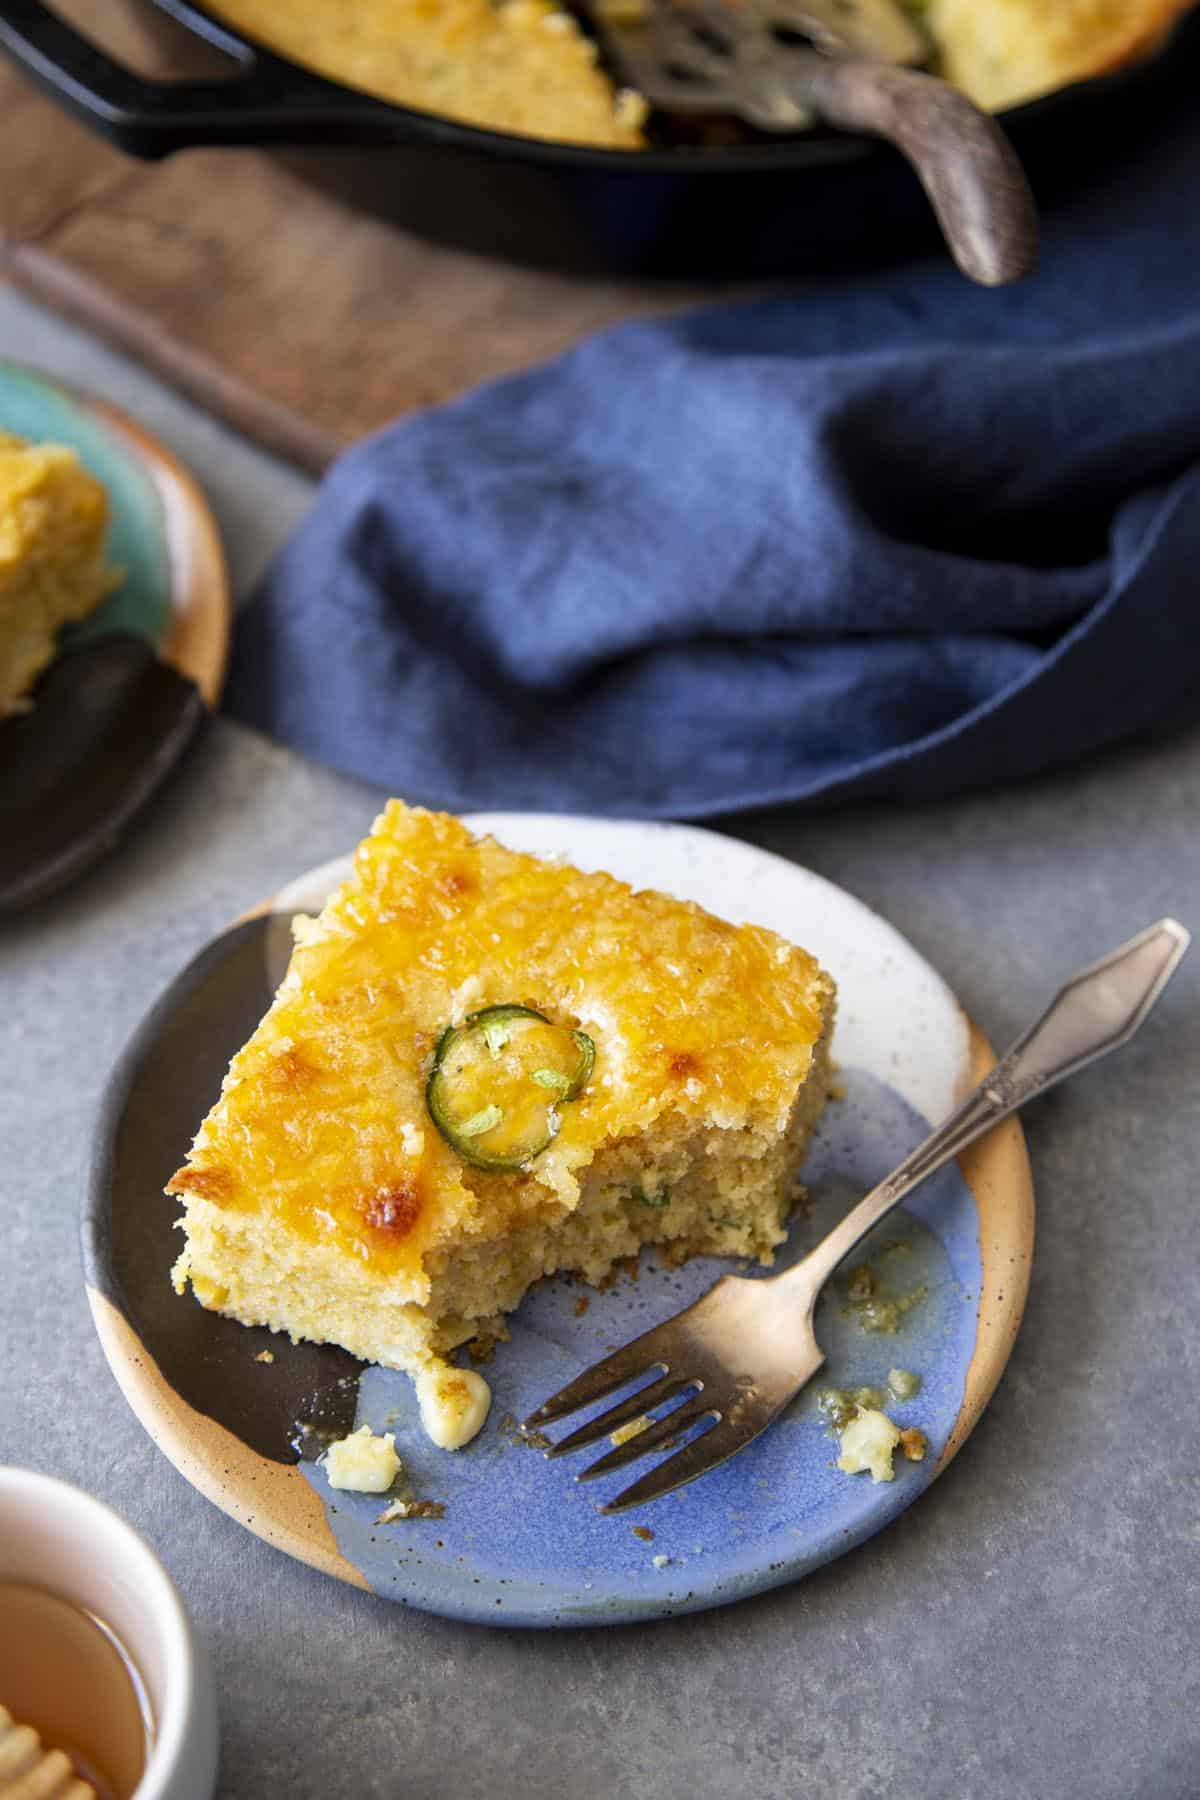 A slice of Jalapeno Cheddar Cornbread on a plate with a fork.